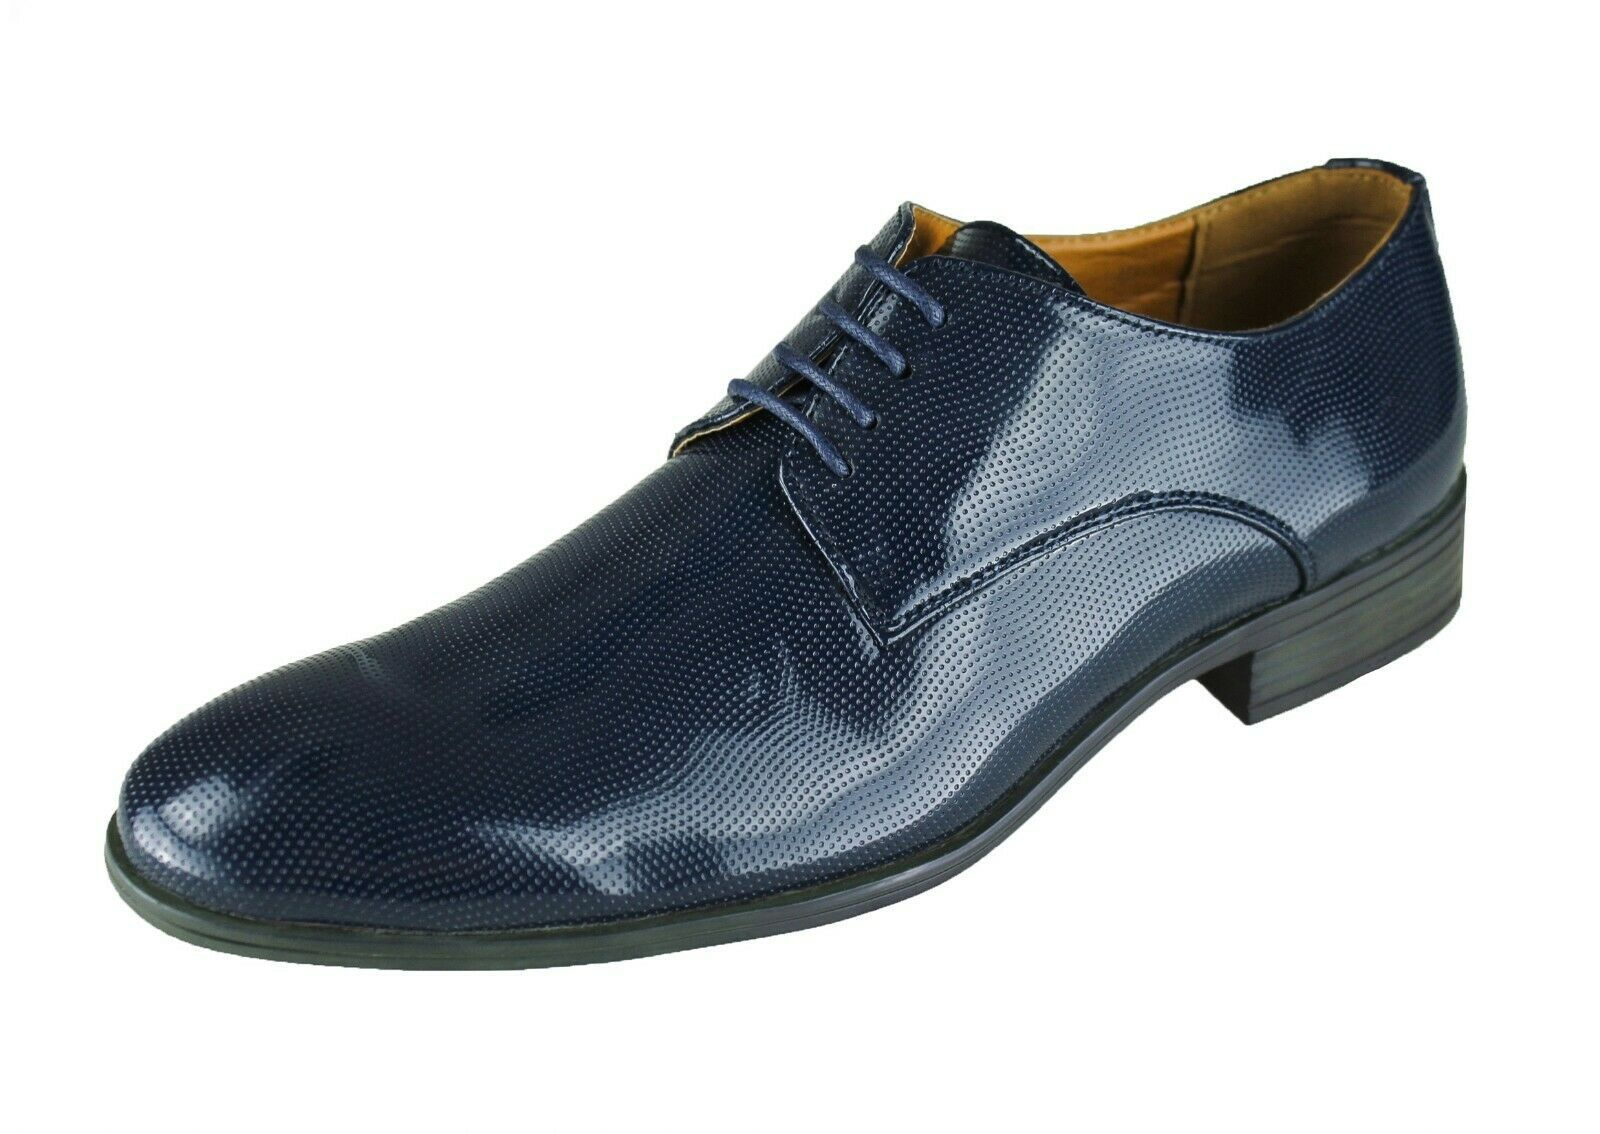 Scarpe uomo Diamond Class blu scuro lucide mans shoes